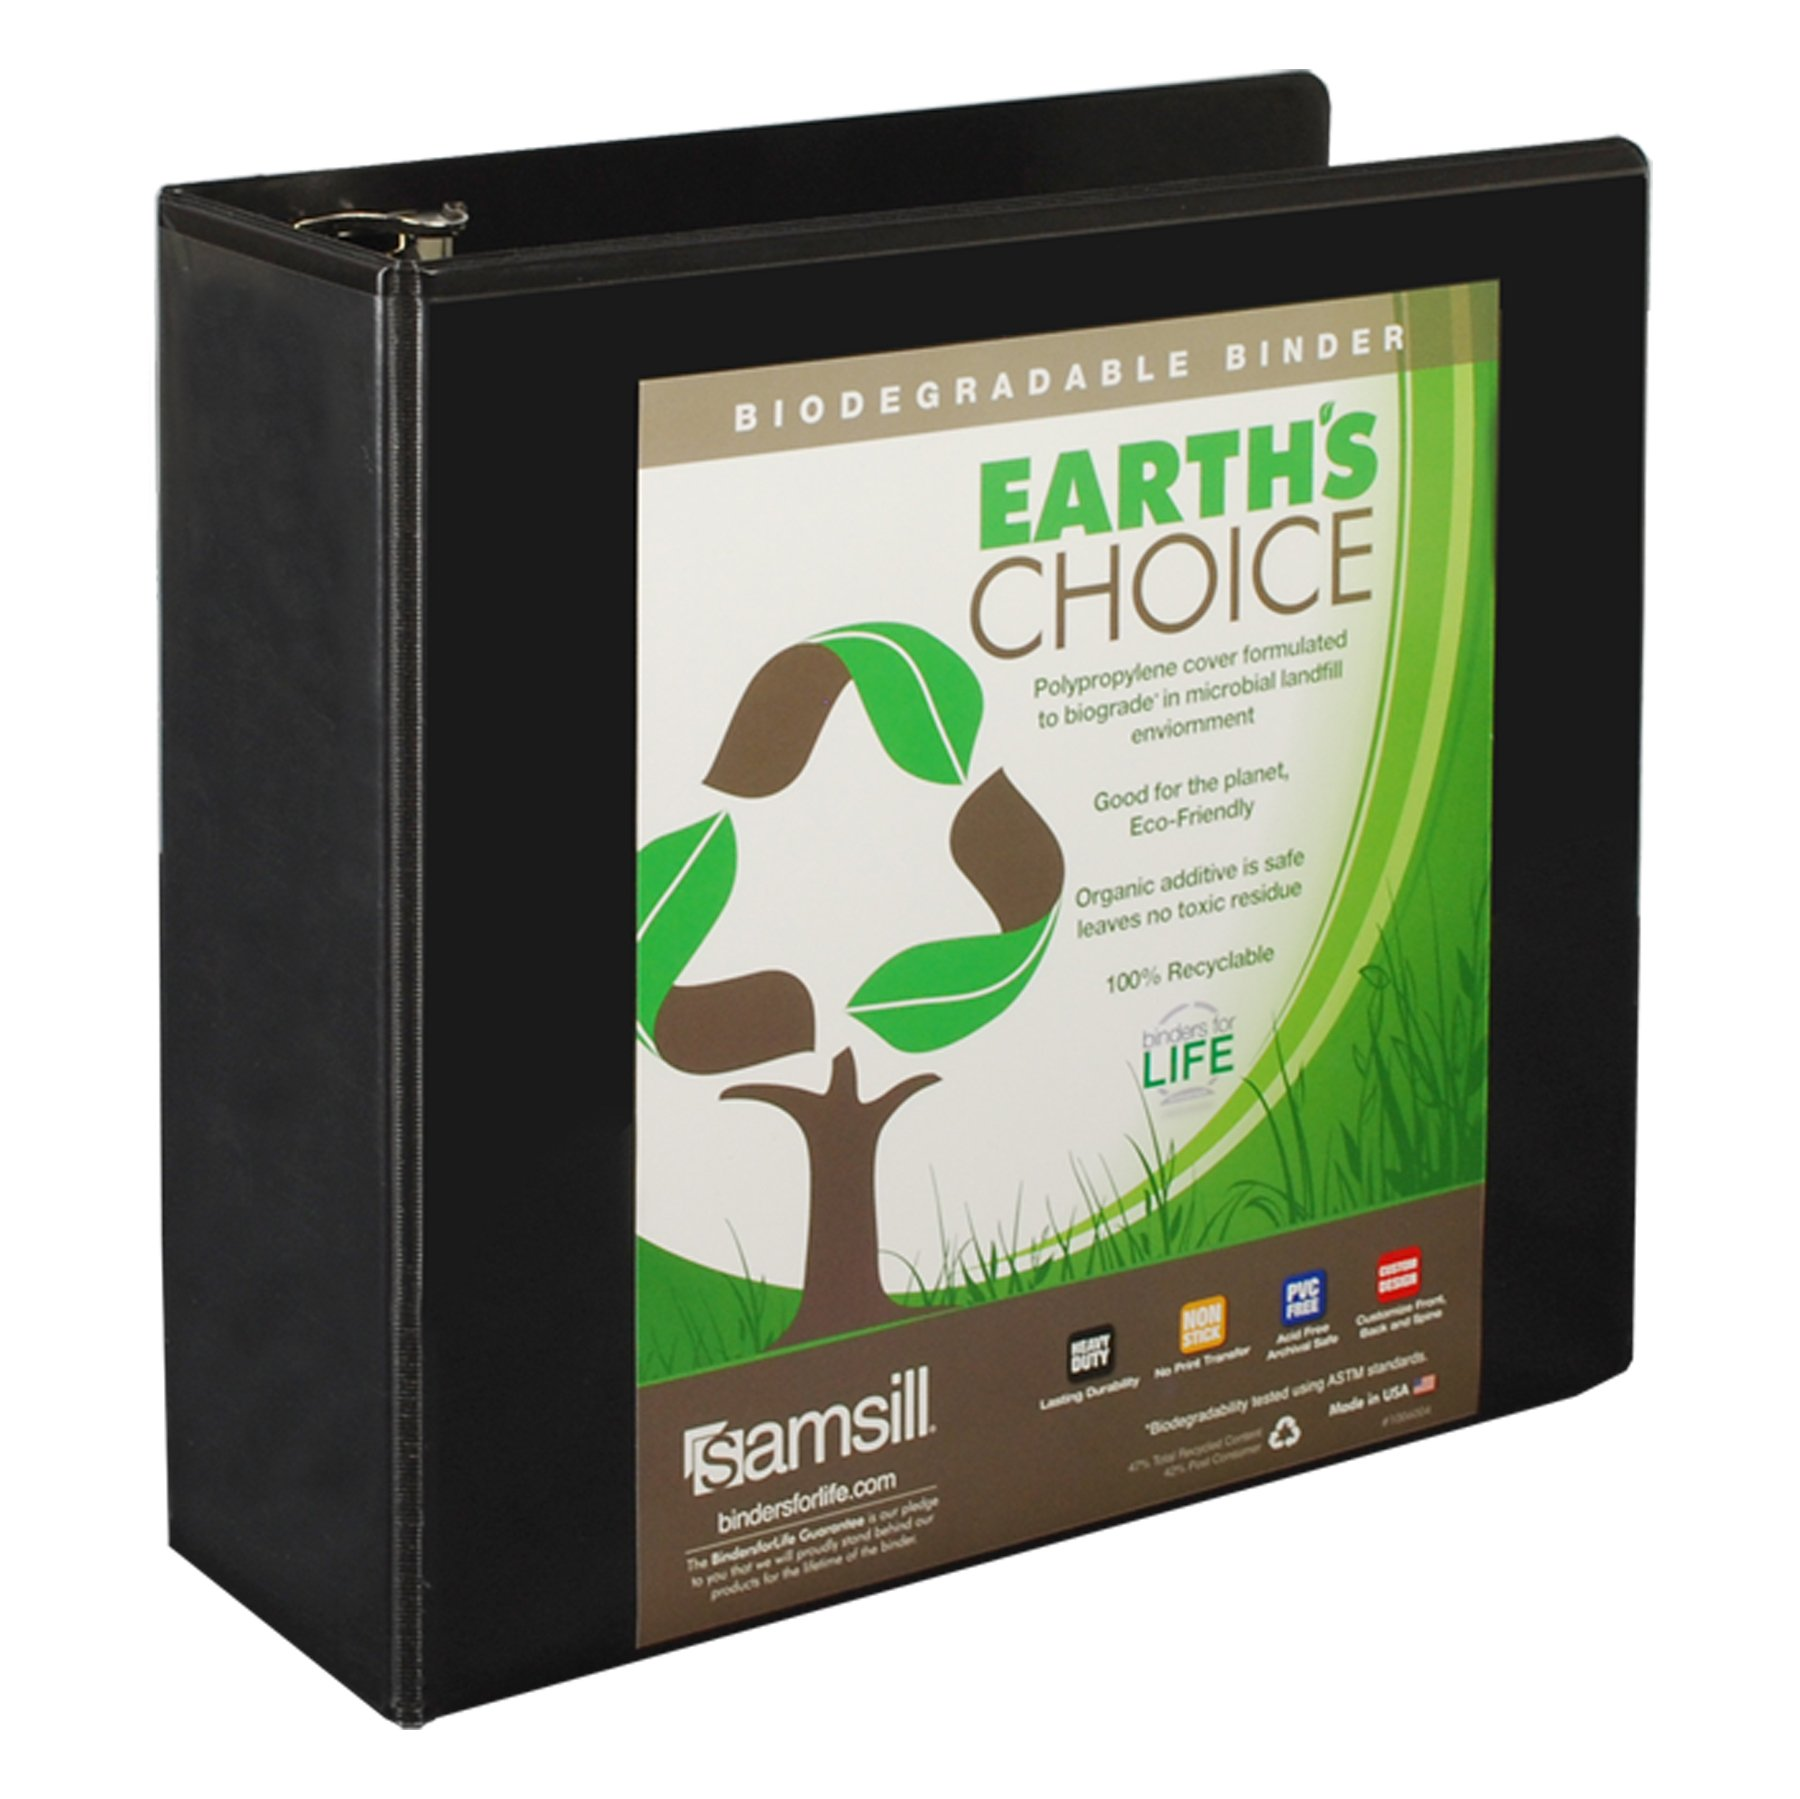 Samsill Earth's Choice Biobased View Binder, 3 Ring Binder, 4 Inch, Round Ring, Customizable, Black